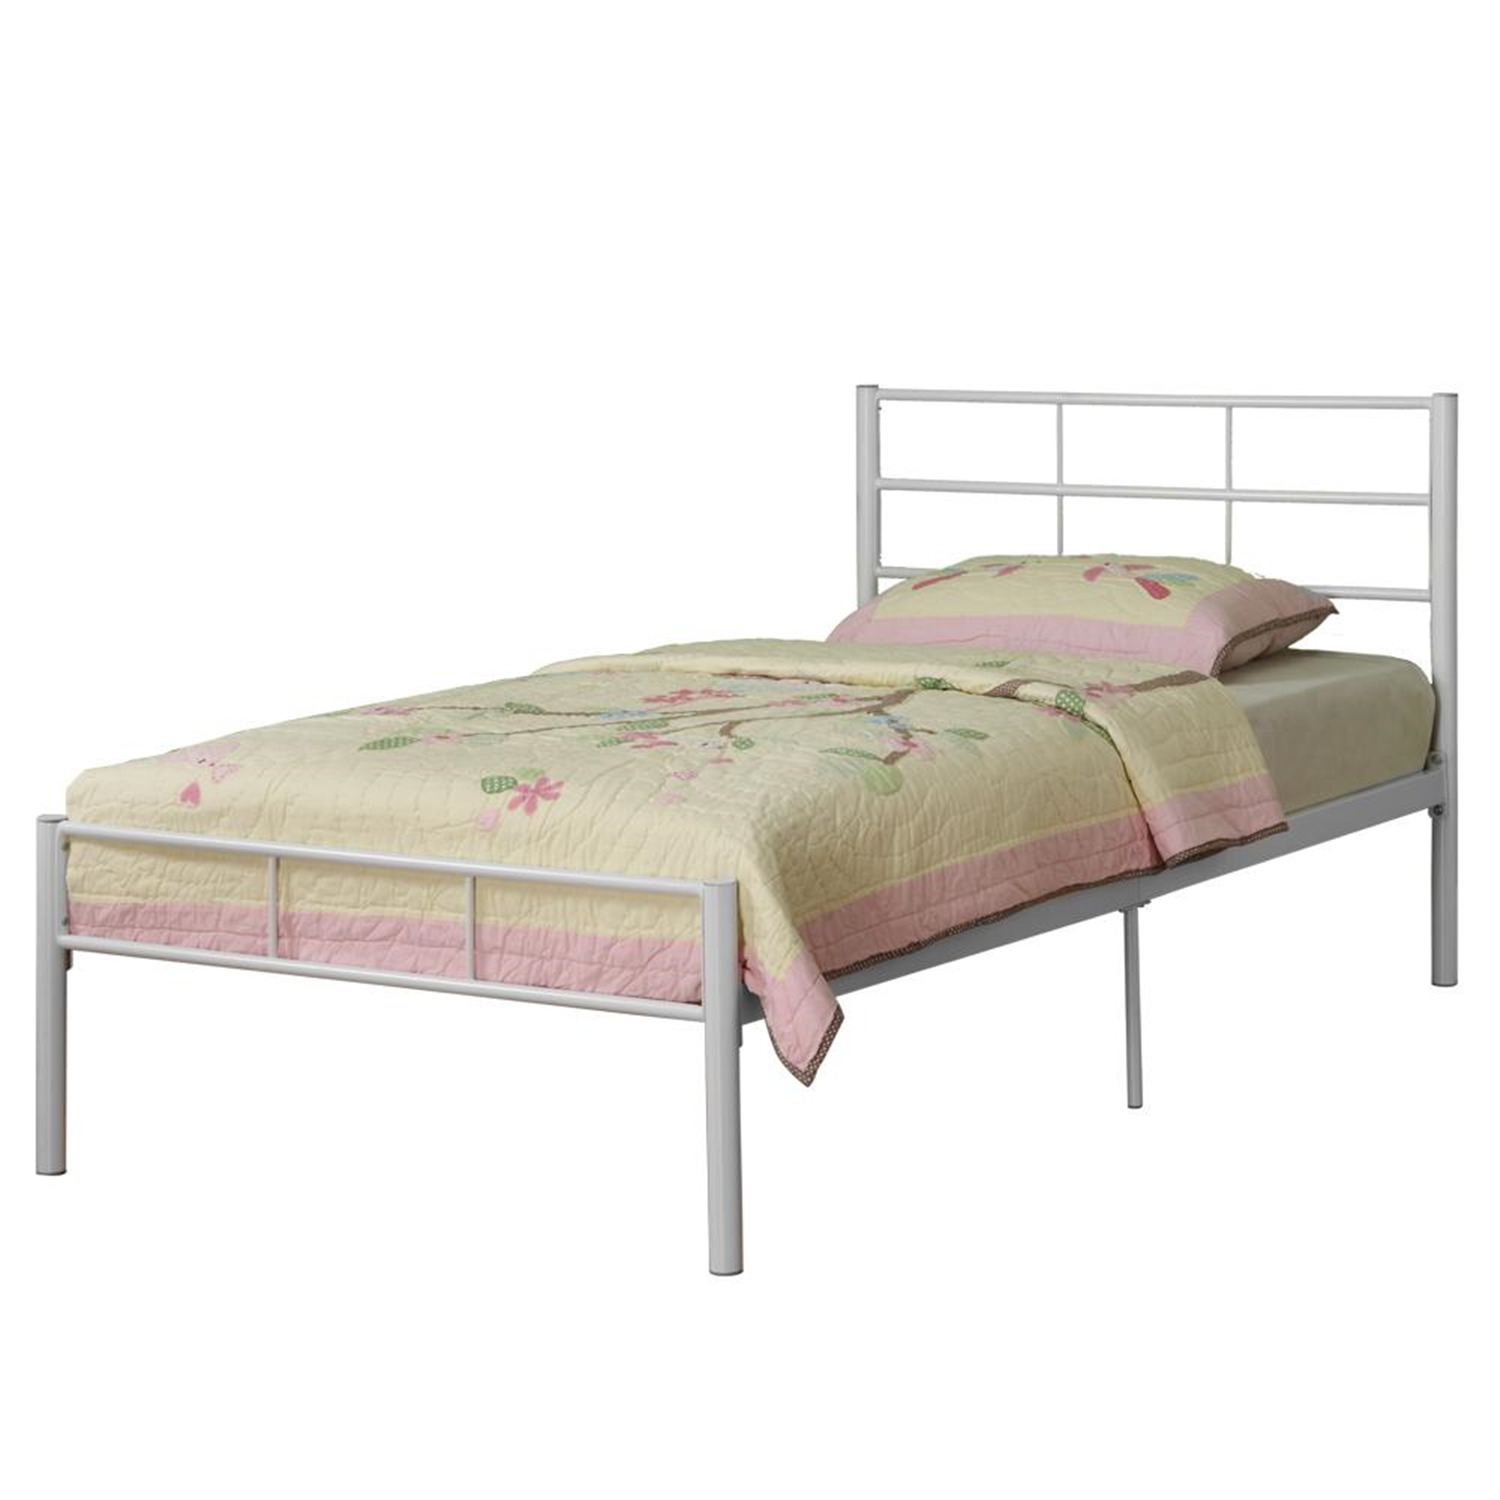 Walker edison twin metal bed frame by oj commerce for Twin mattress and frame